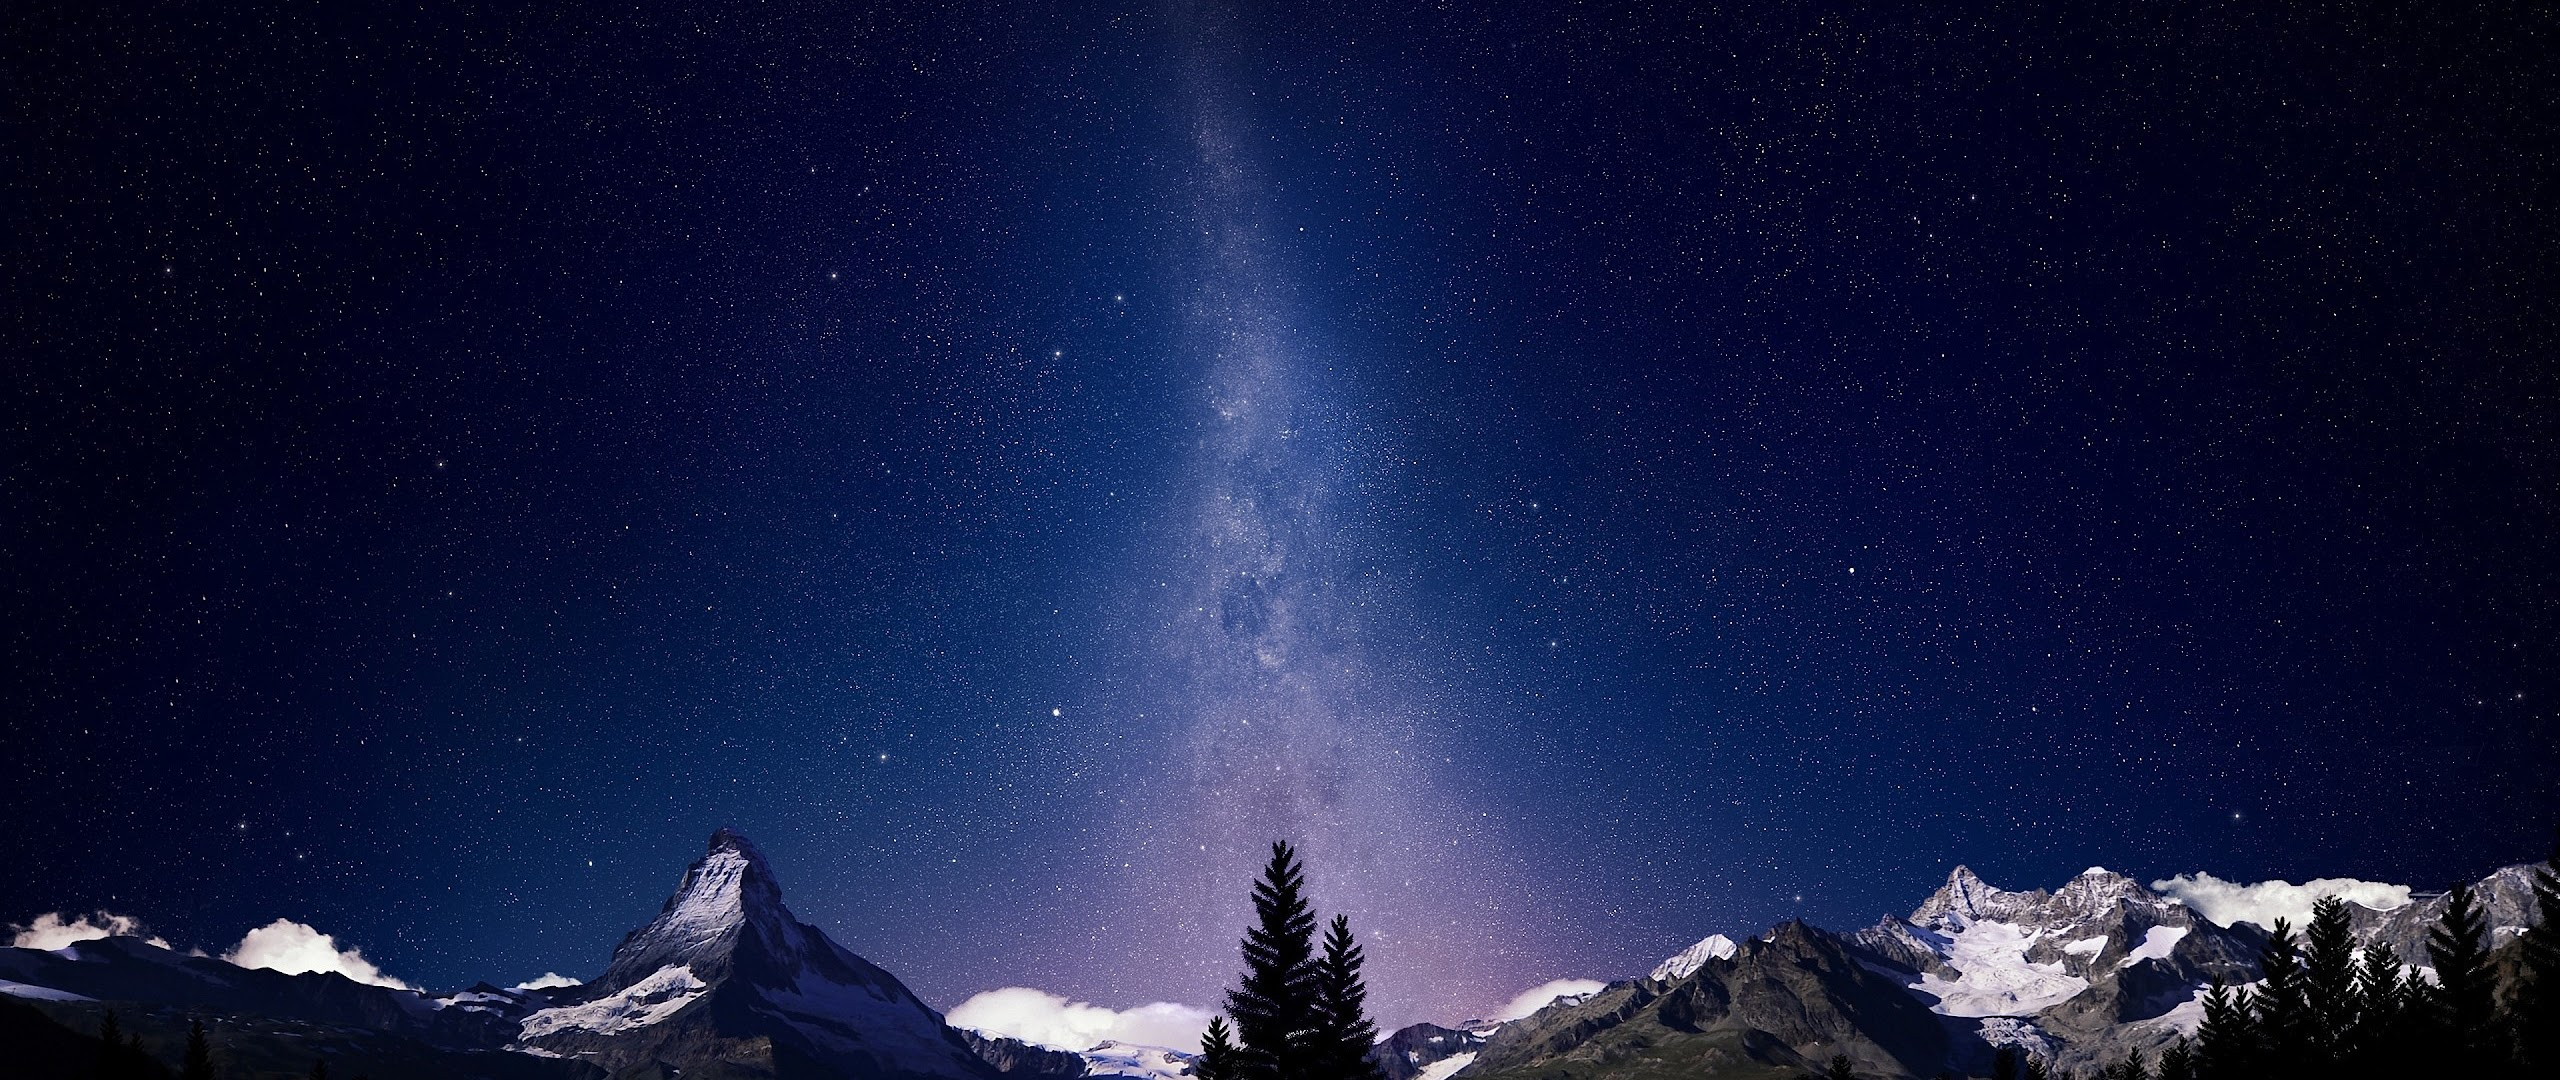 Milky Way Night Sky Stars 4k 3840x2160 Wallpaper 72